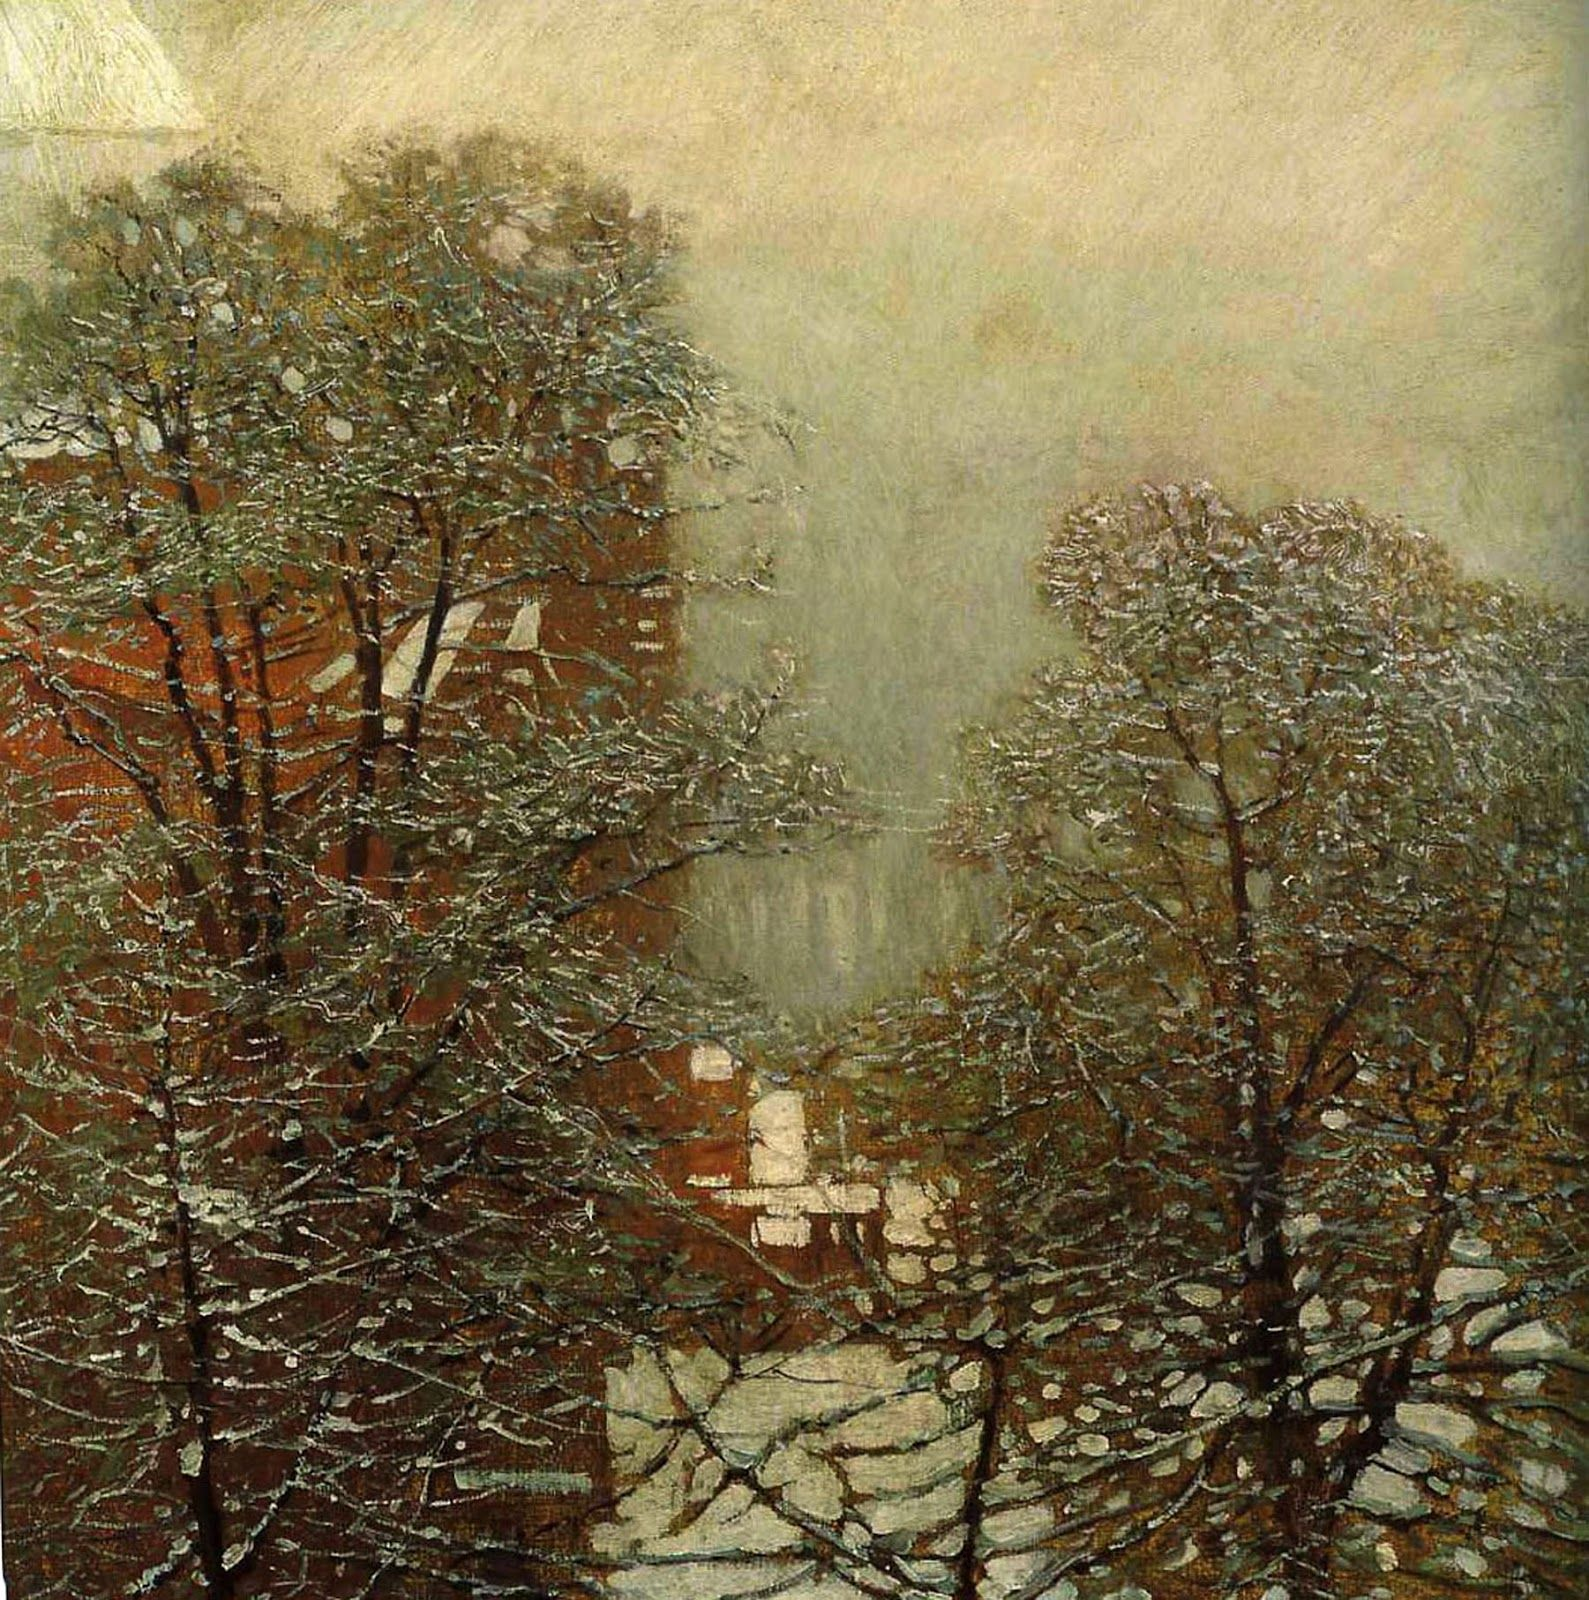 CarlMoll%252BWinterScene%255B8%255D.jpg (image) | Winter painting, Winter  landscape, European art